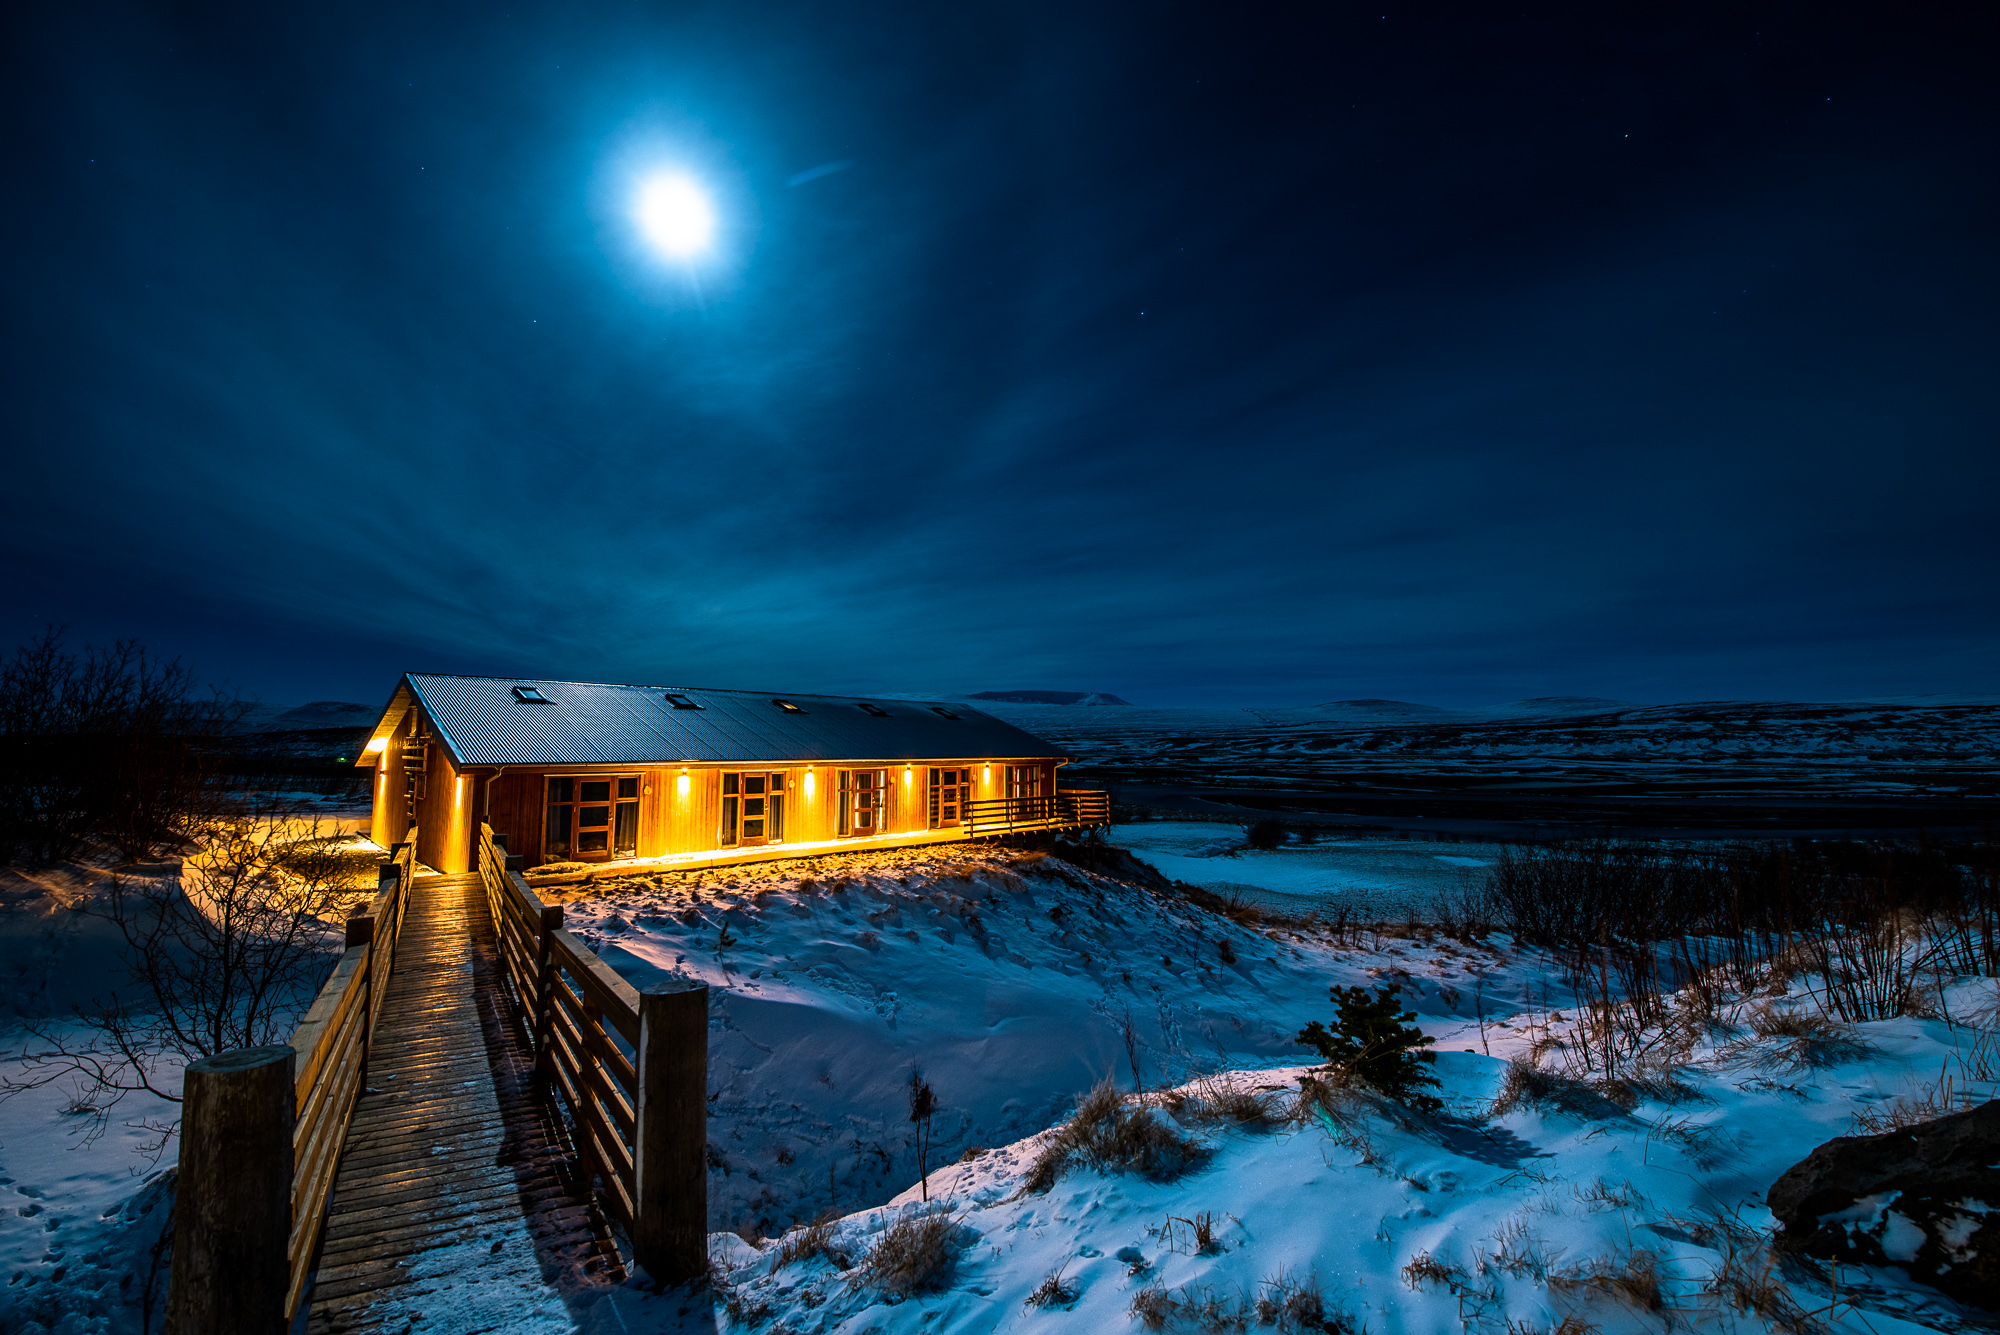 Our beautiful warm log cabin nestled in the icy cold snow of the Iceland Winter Wonderland.